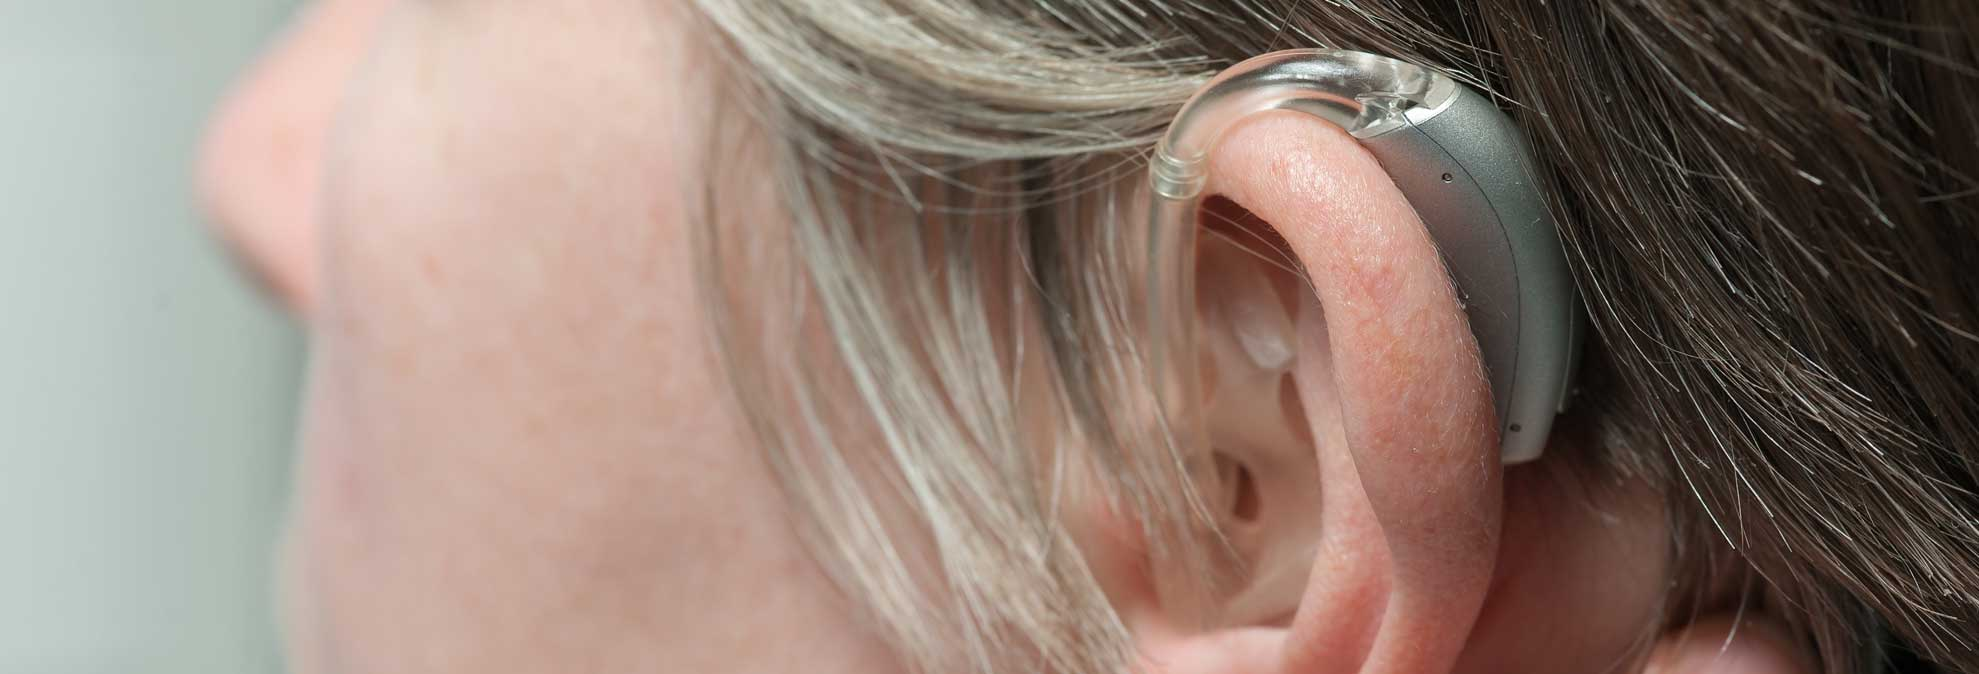 Used Car Batteries >> Best Hearing Aid Buying Guide - Consumer Reports